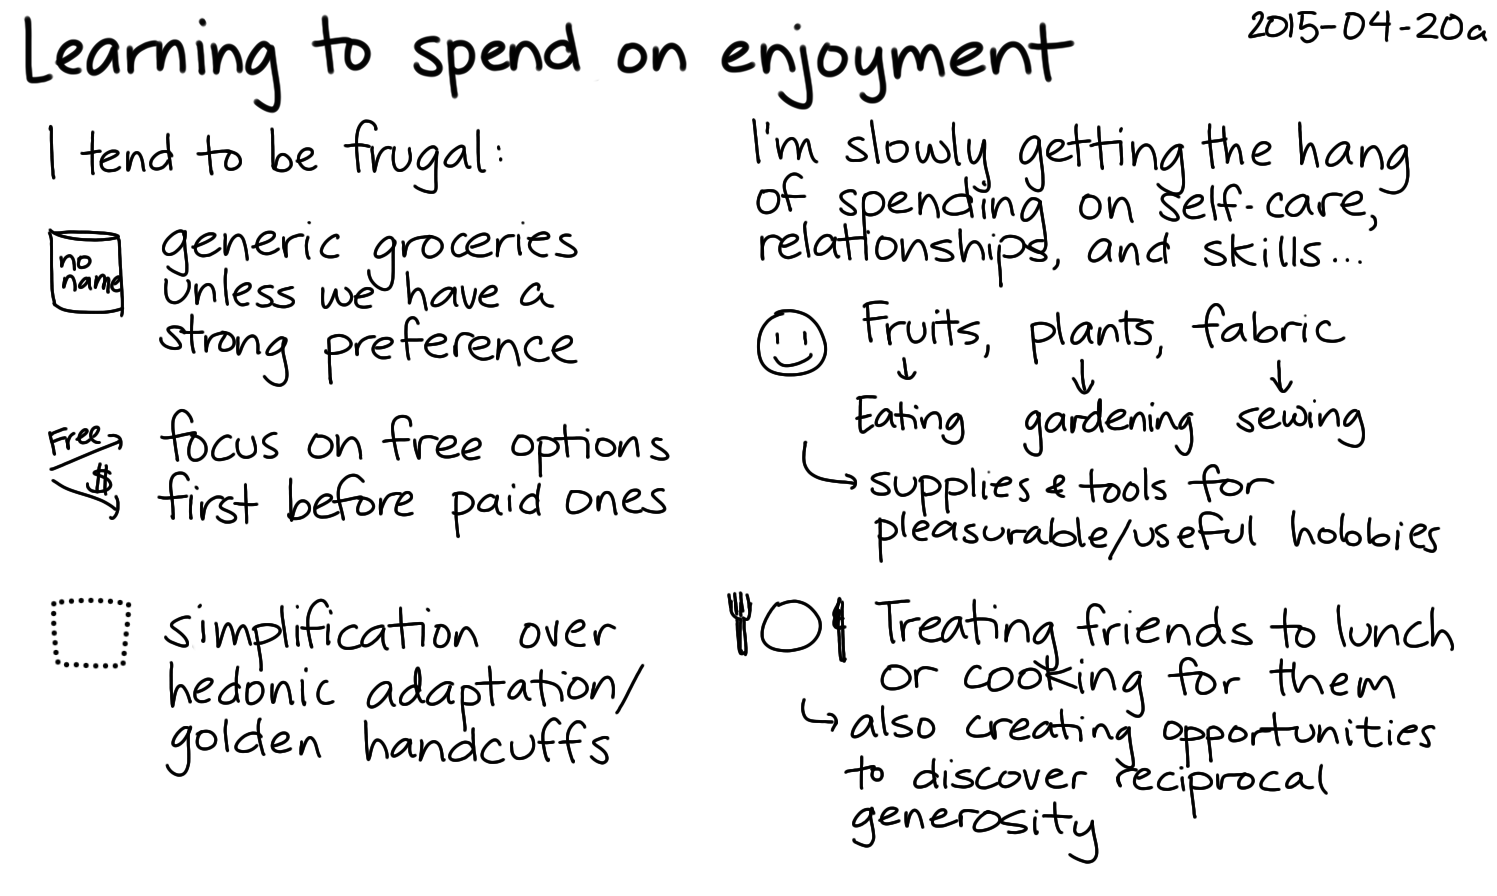 2015-04-20a Learning to spend on enjoyment -- index card #frugality #spending.png